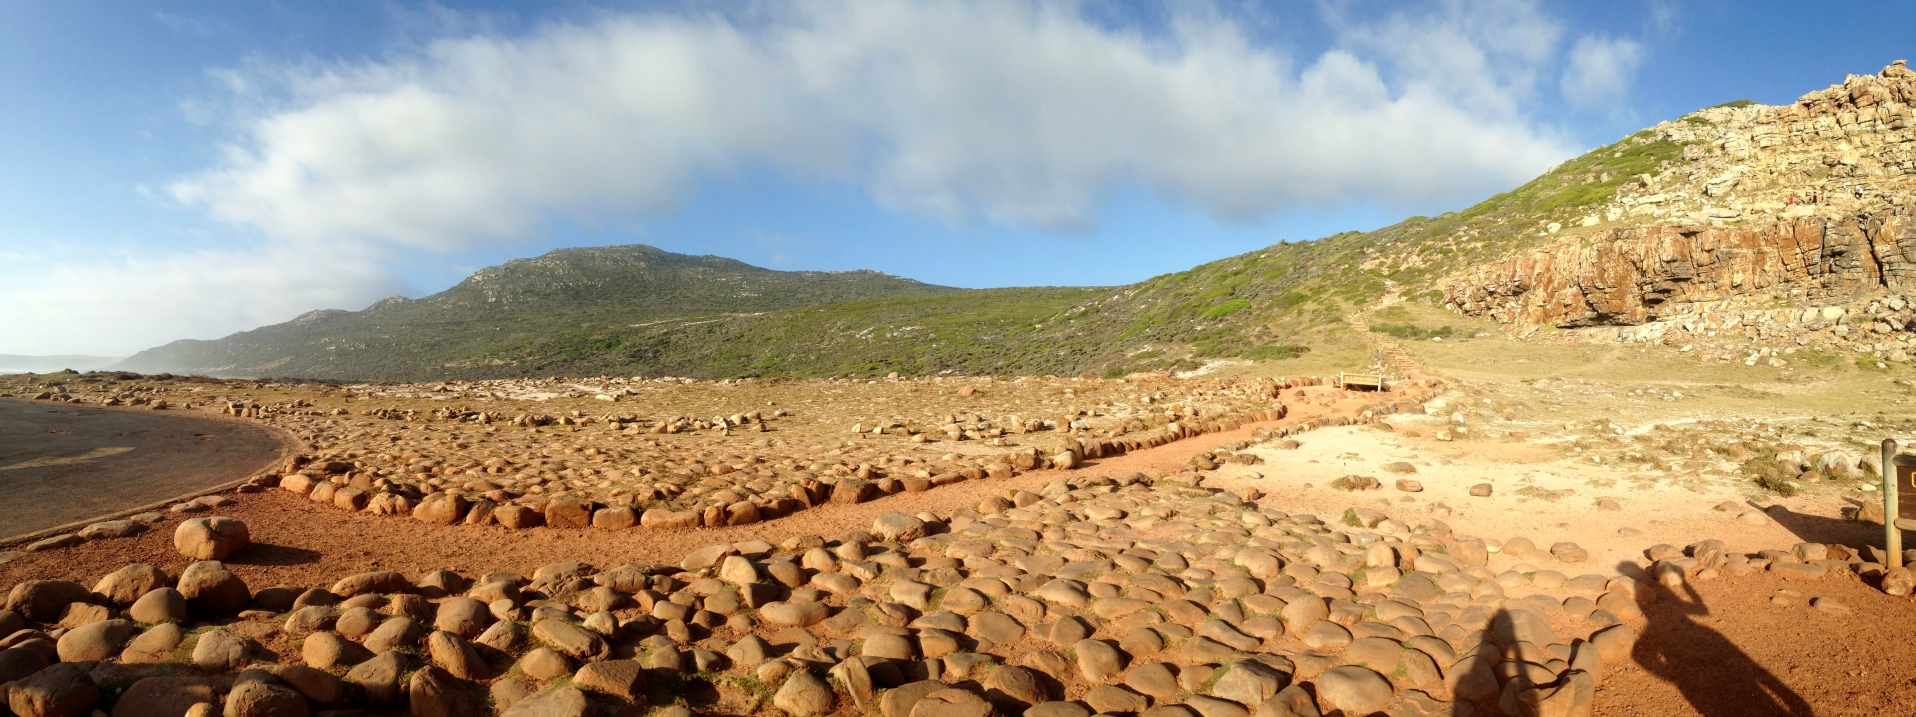 Another view of the Cape of Good Hope.